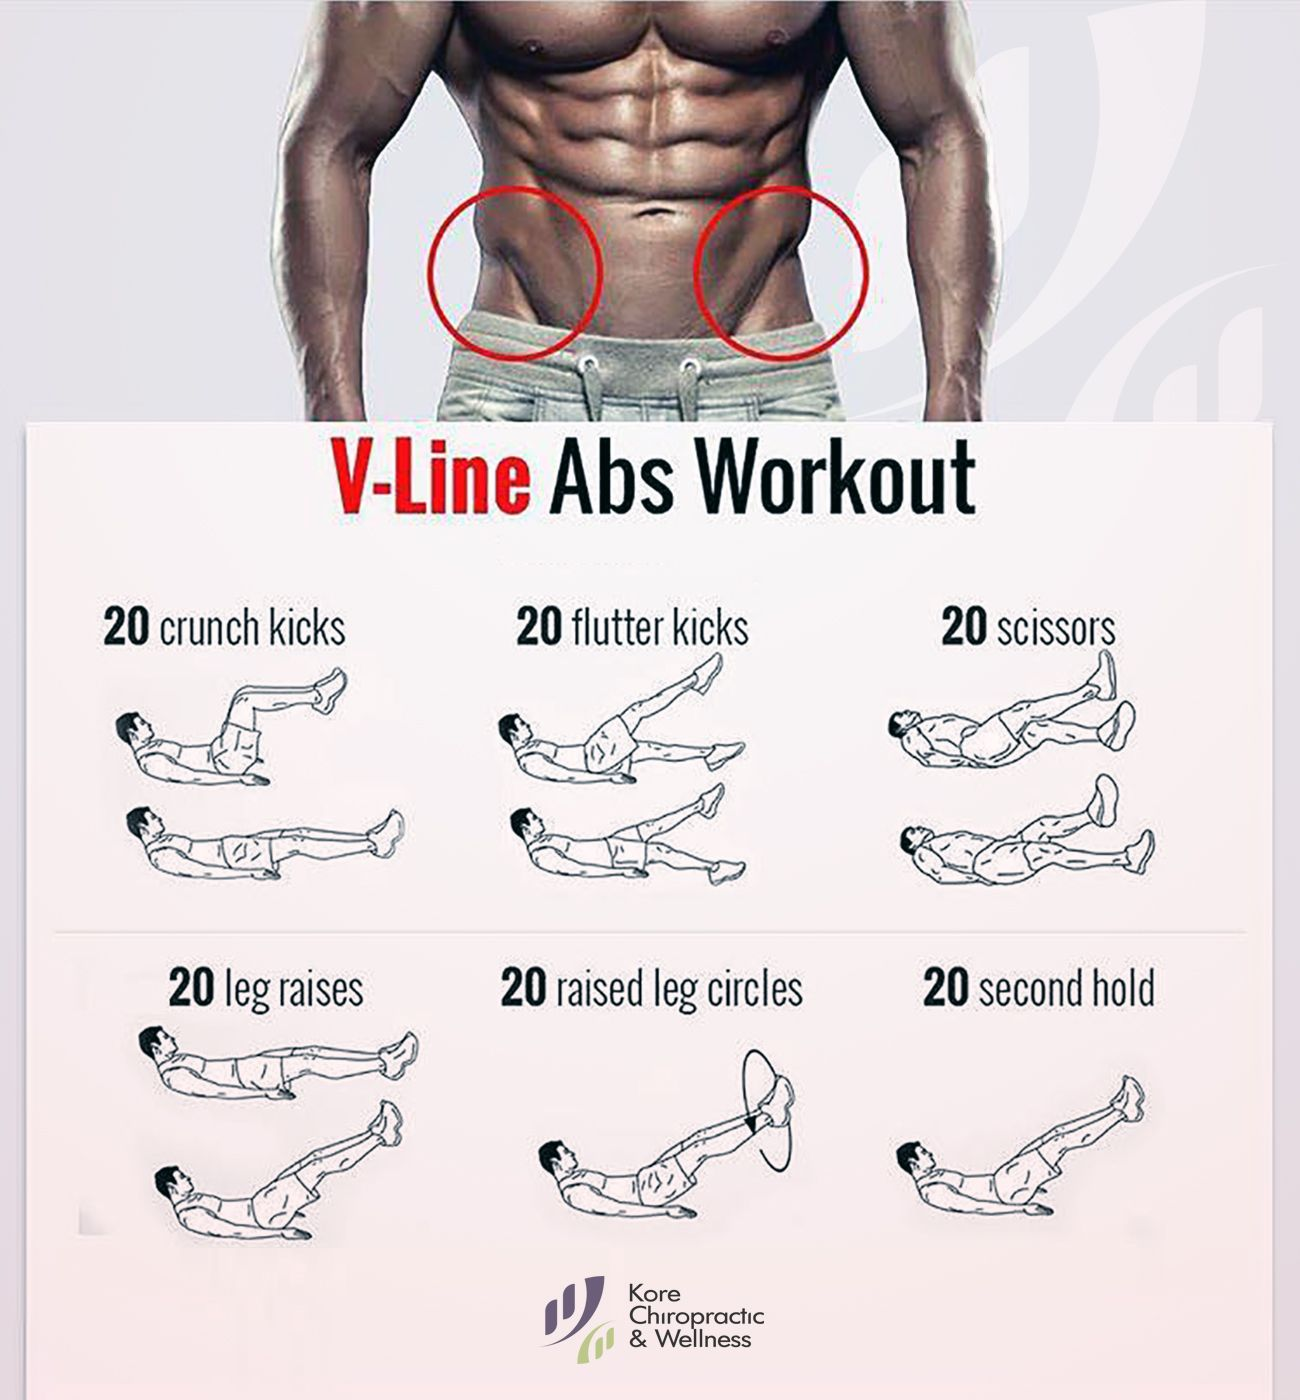 VLine Abs Workout crunch kicks flutter kicks